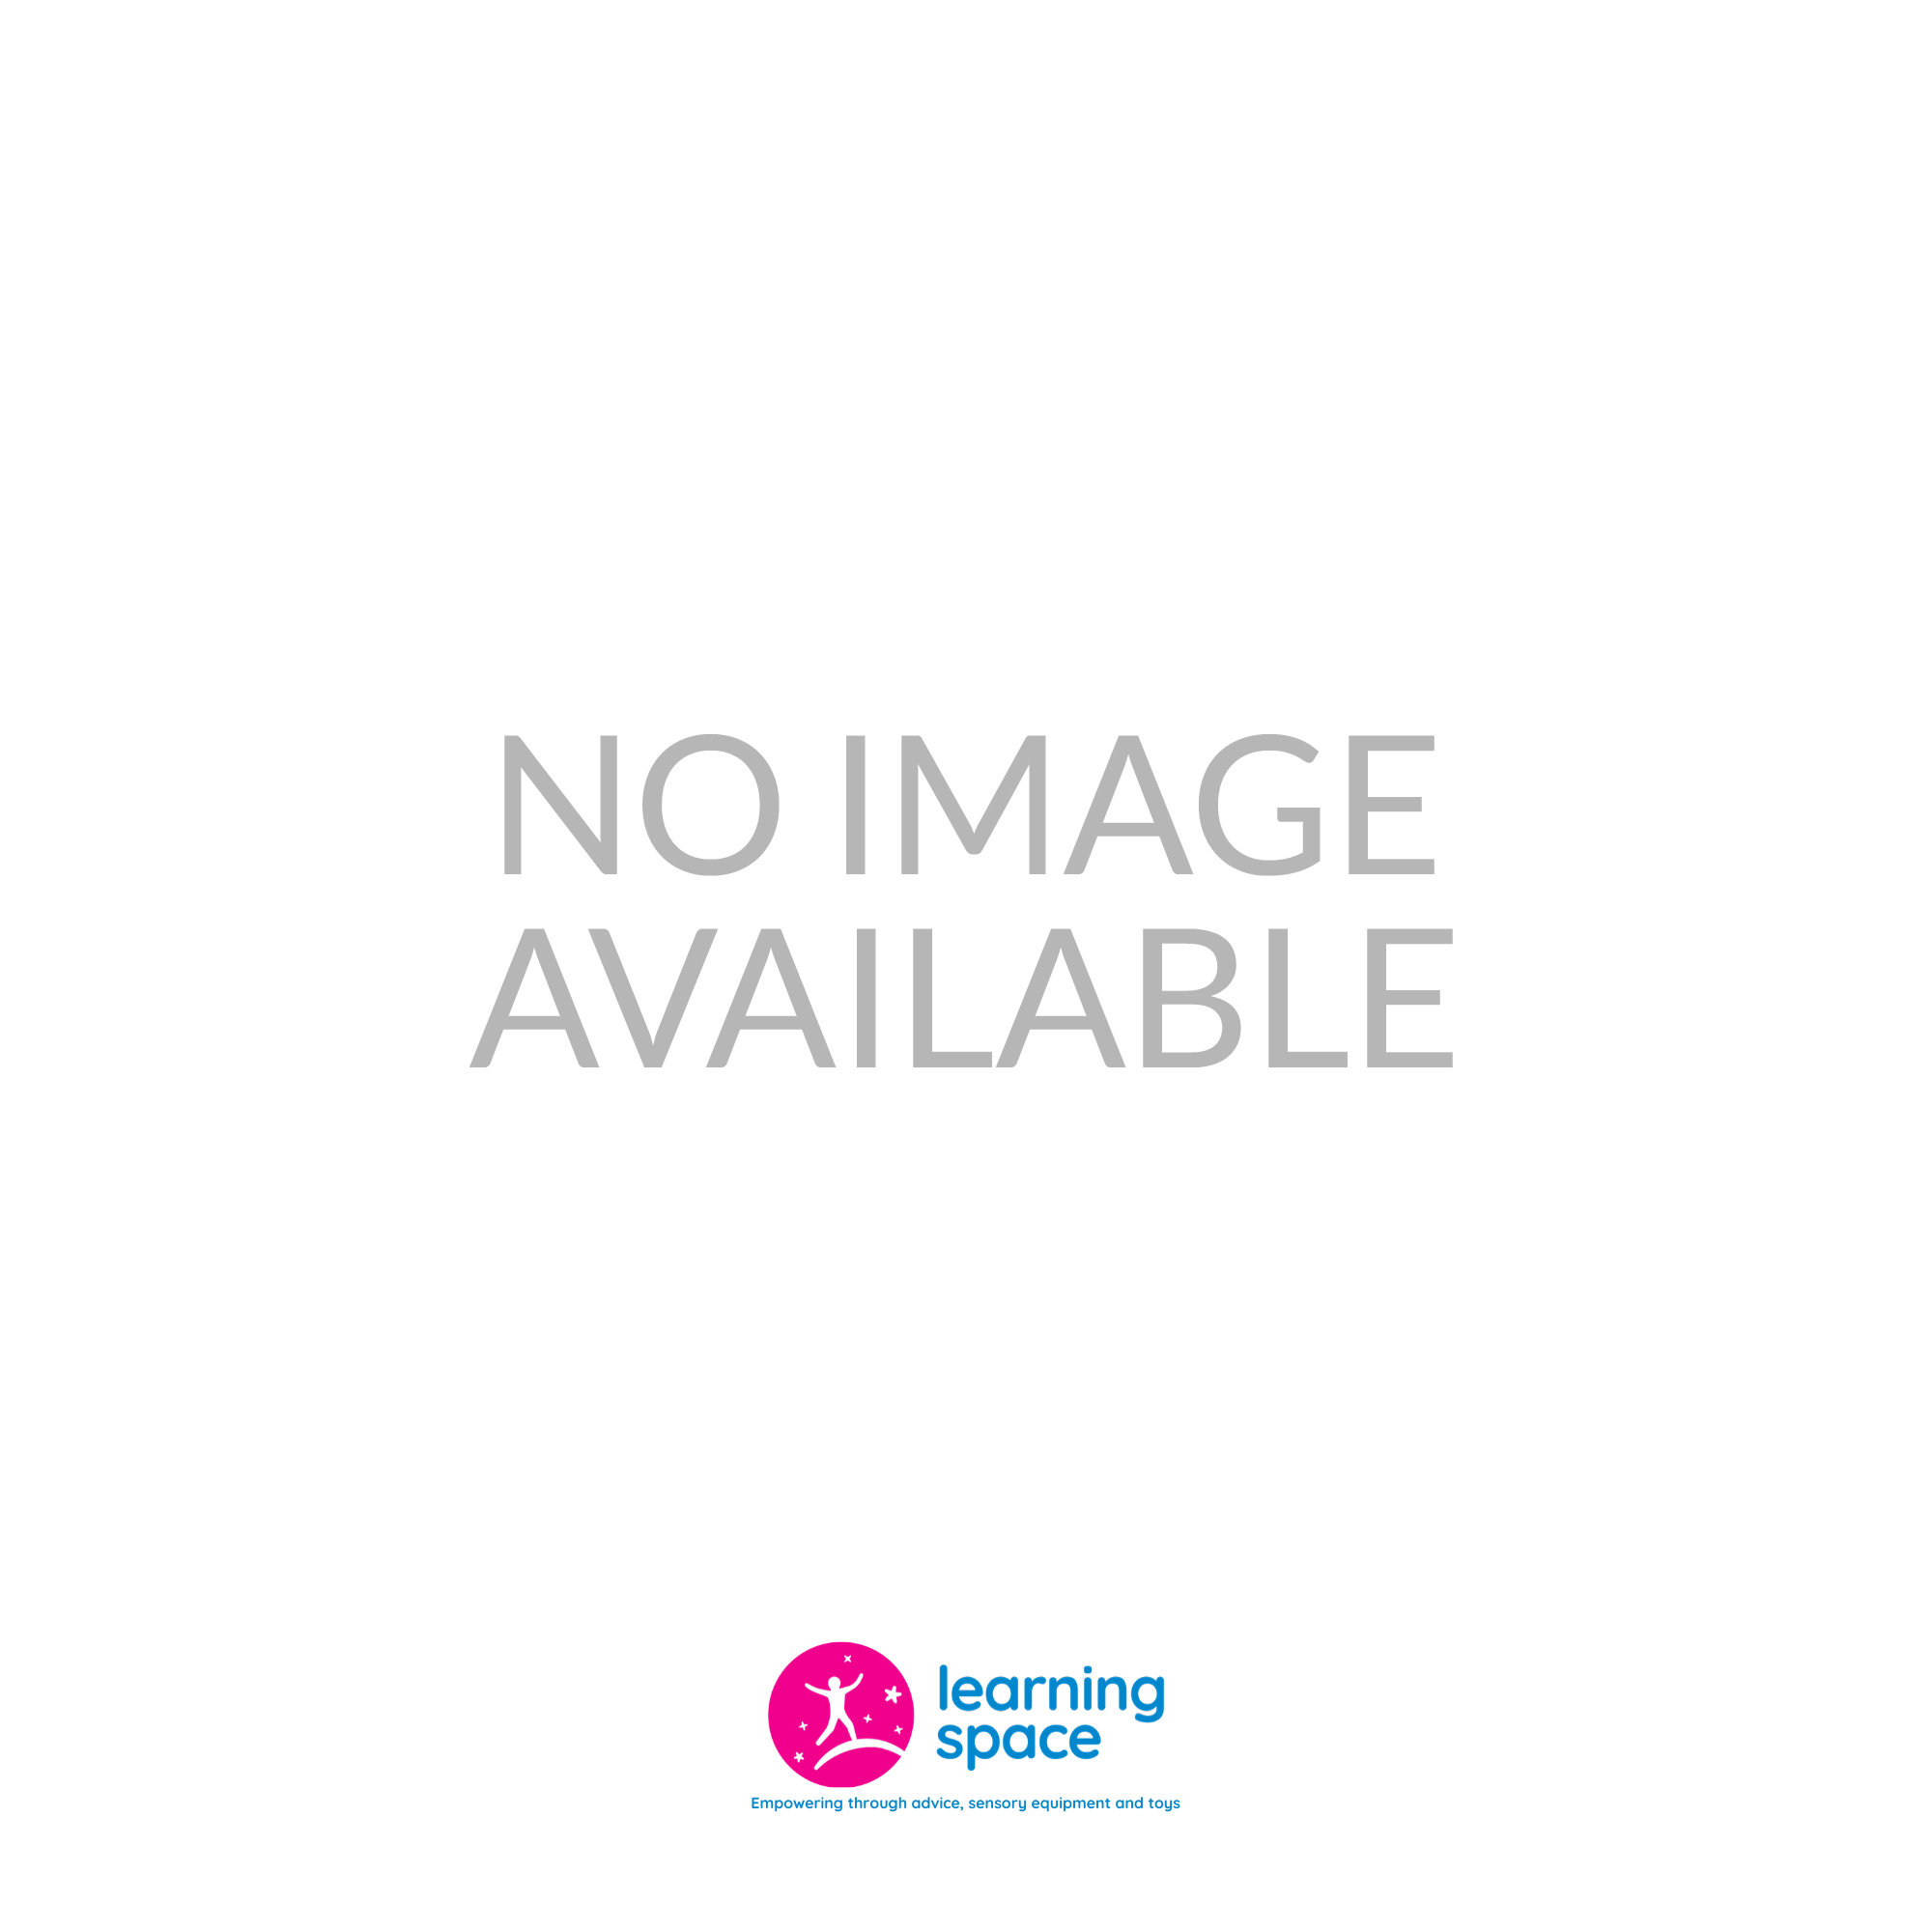 Dolls House - A 25 piece dolls house themed jigsaw puzzle.